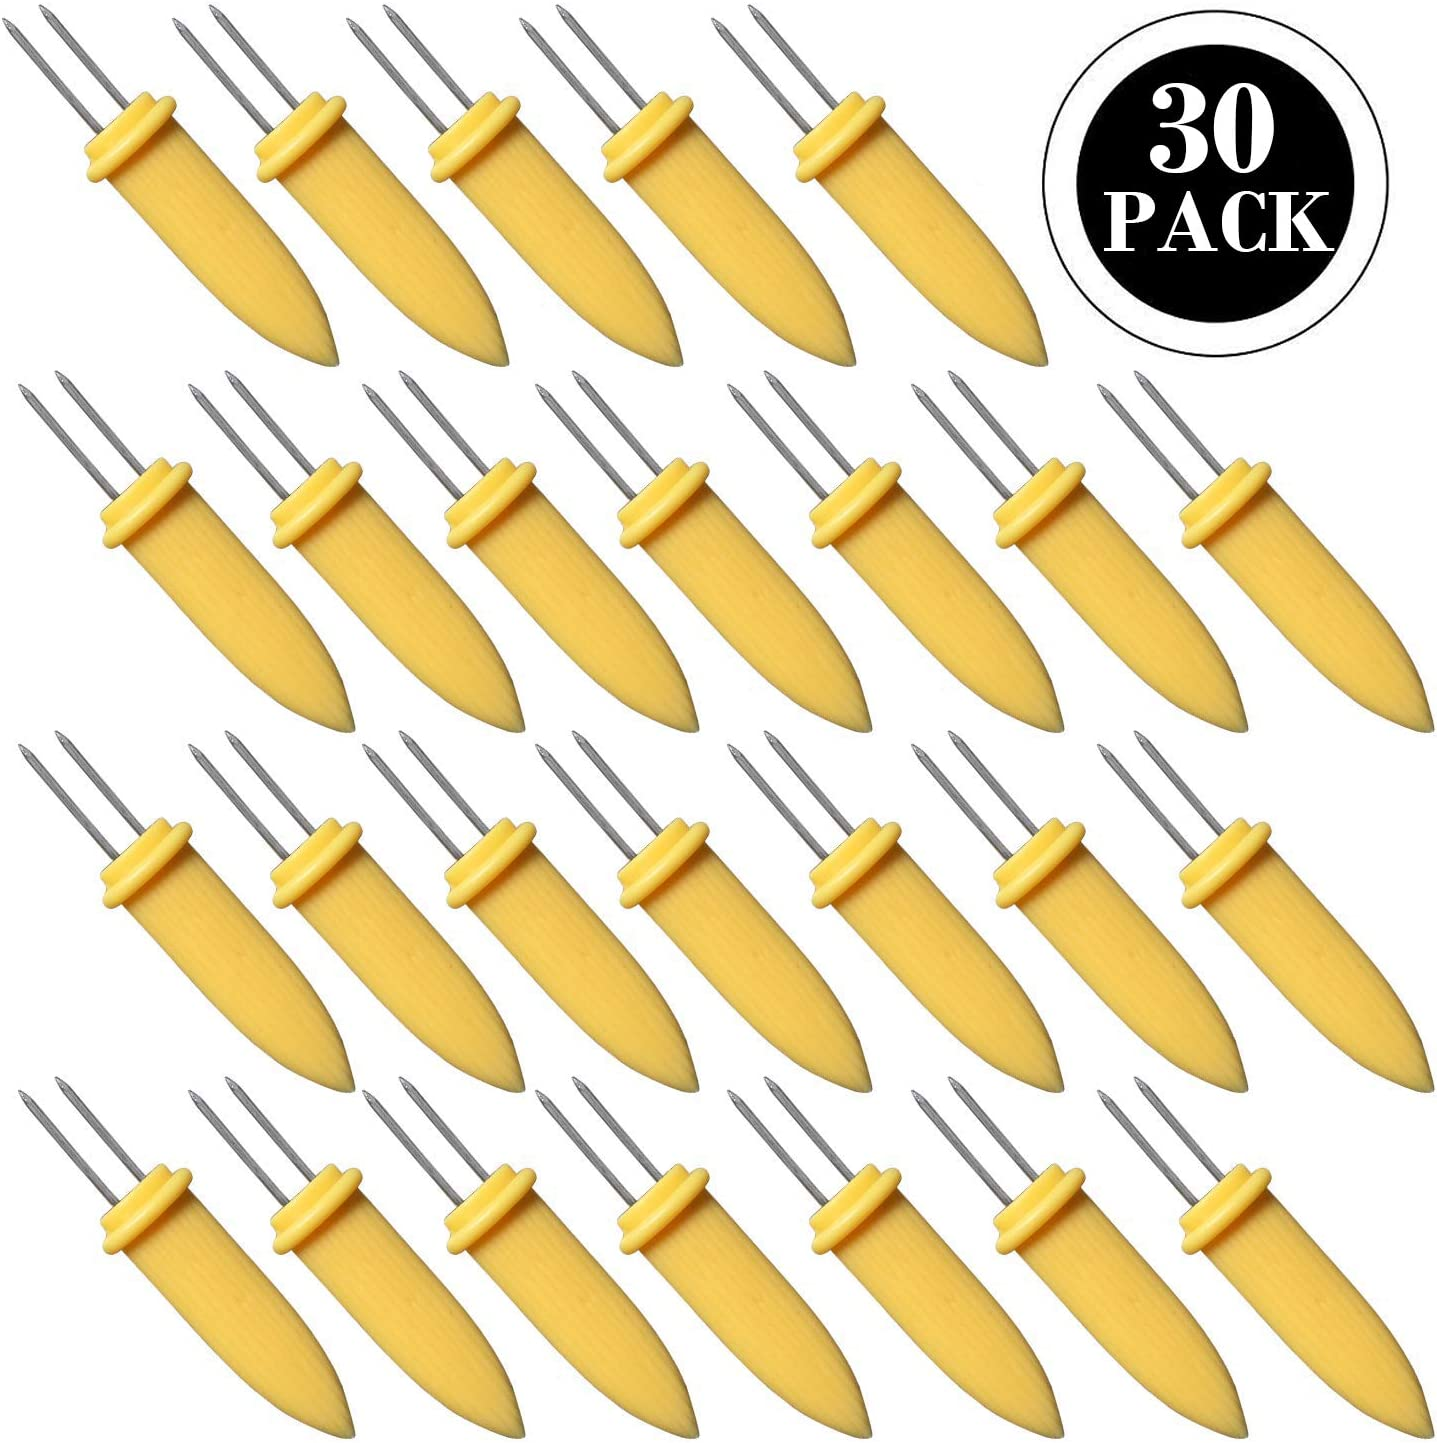 Large Size Stainless Steel Corn Holder with Storage Box Twin Prong Sweetcorn Holder Corn on The Cob Skewers Fruit Fork for Kitchen Tool Outdoor Home BBQ Cooking BigOtters 30PCS Corn Holders